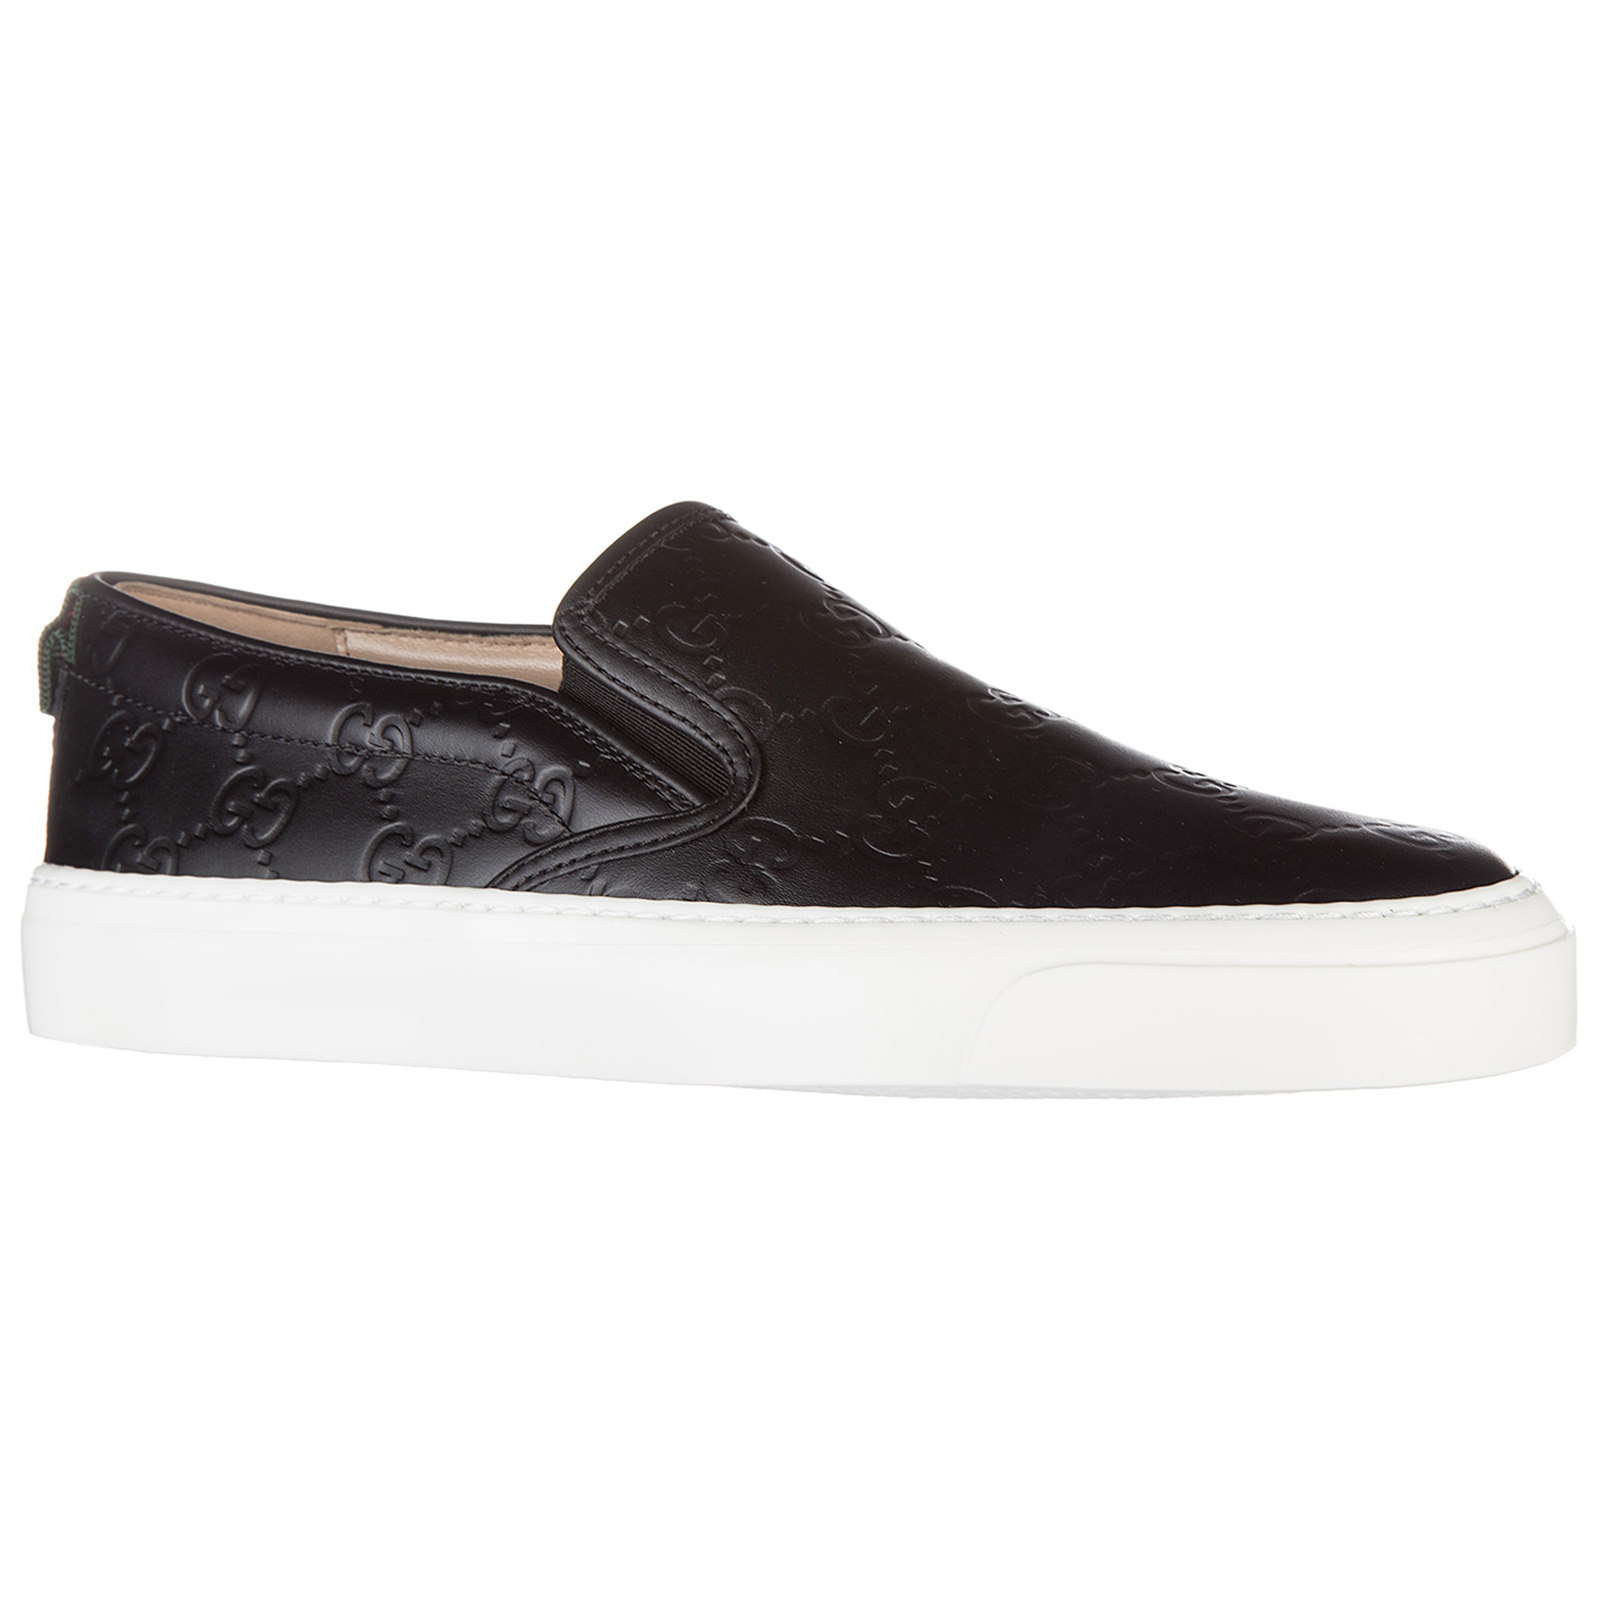 Women's leather slip on sneakers  gucci signature